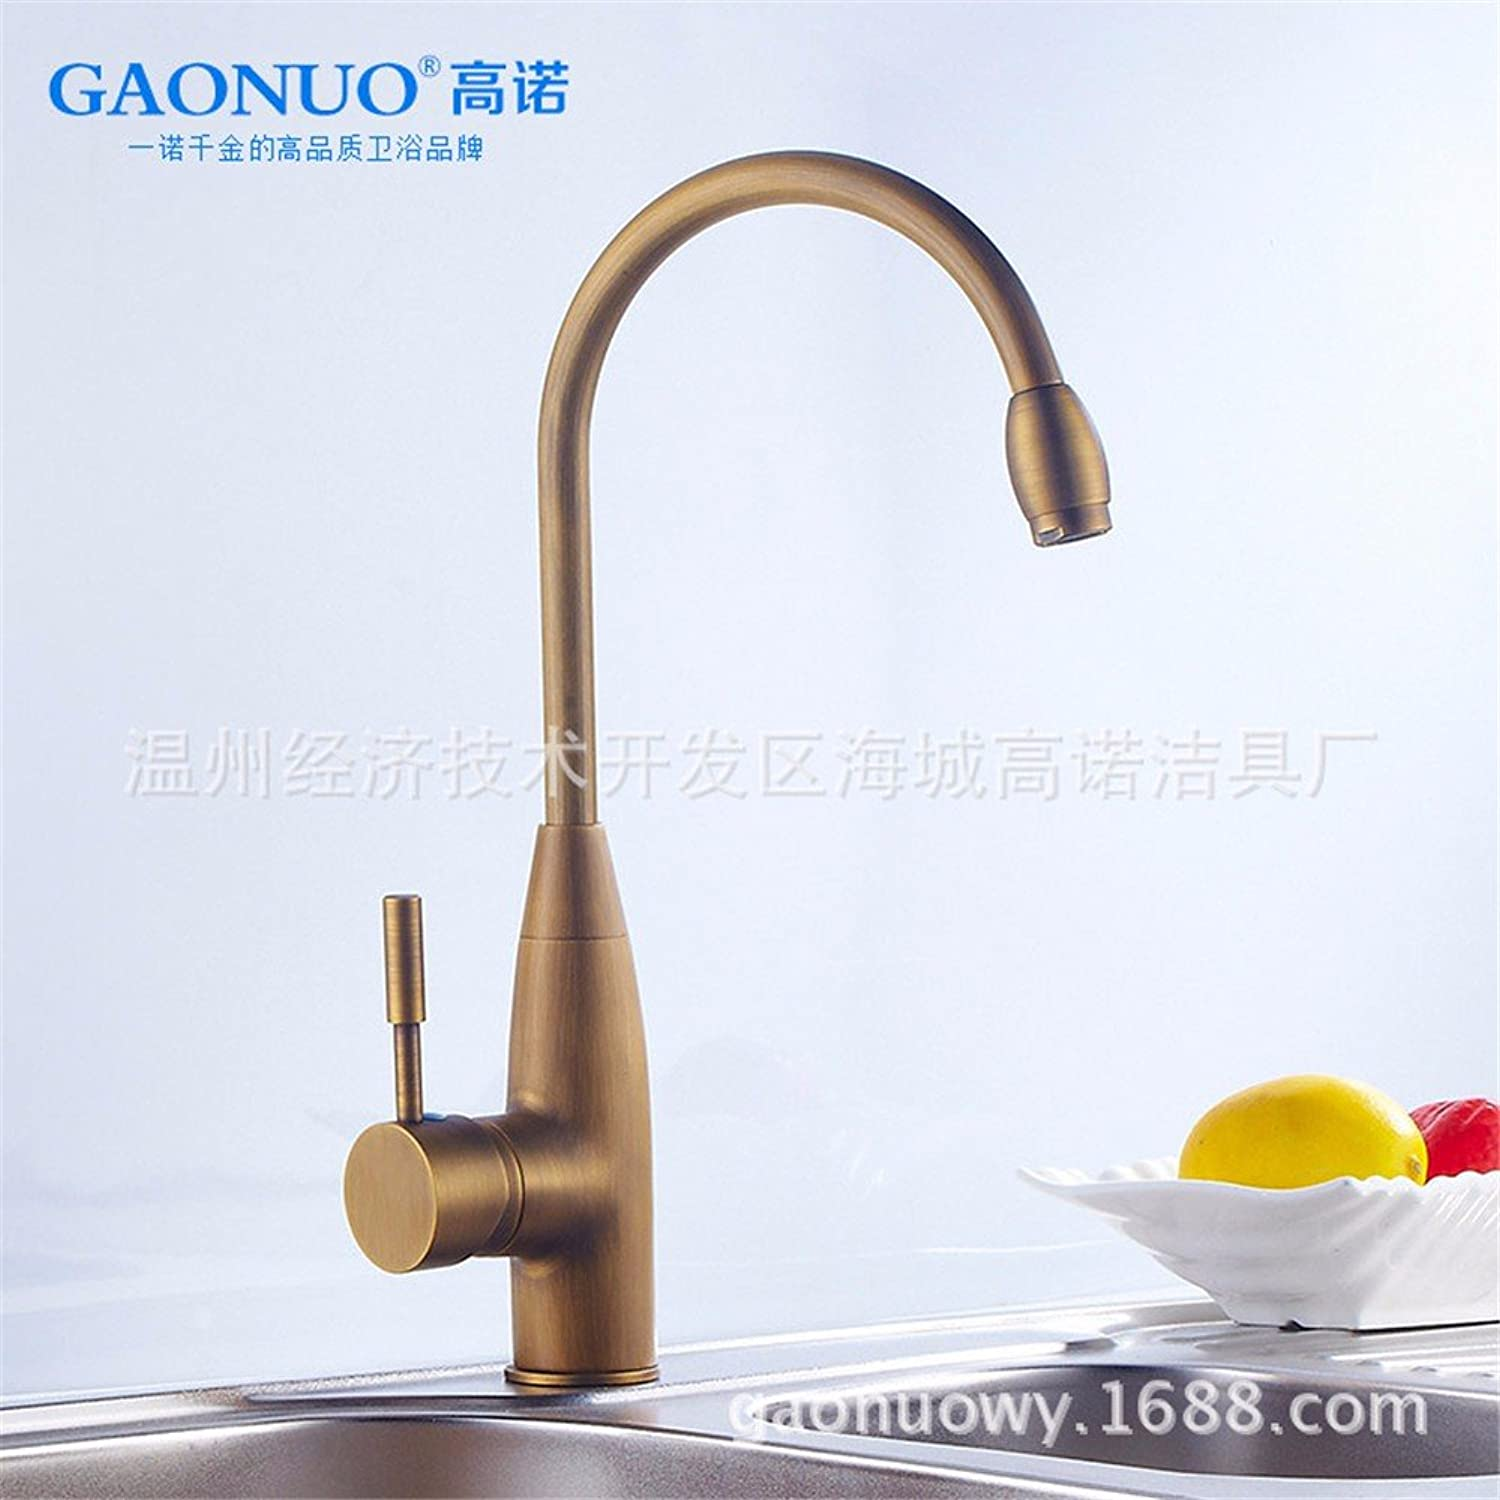 Hlluya Professional Sink Mixer Tap Kitchen Faucet Antique-brass faucets kitchen sink faucet dish washing basin redation turn the faucet